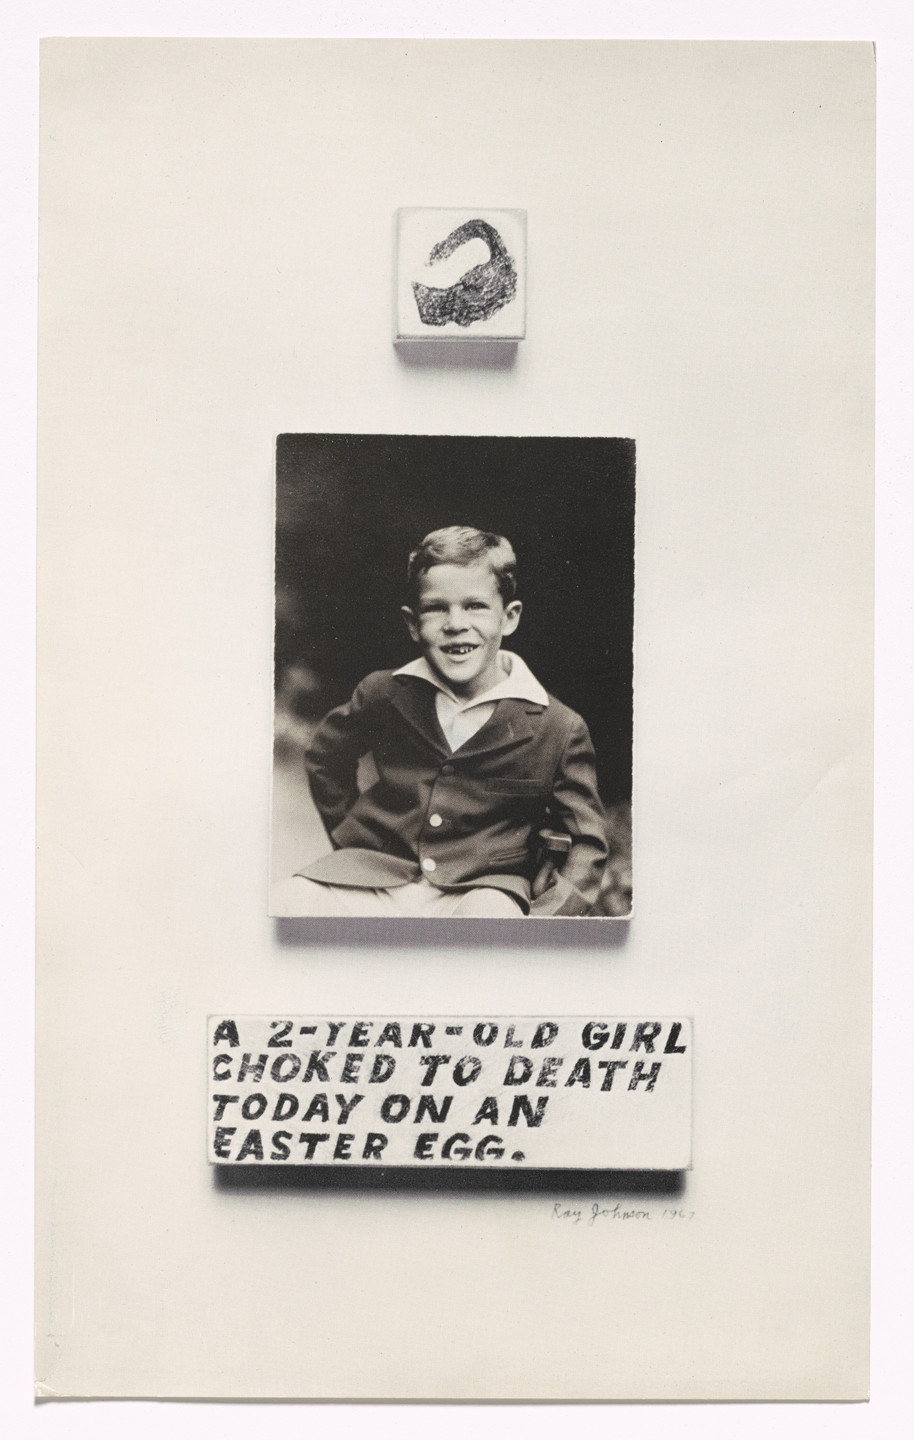 Ray Johnson. A Two-Year-Old Girl Chocked to Death Today on an Easter Egg from S.M.S. No. 2. 1968